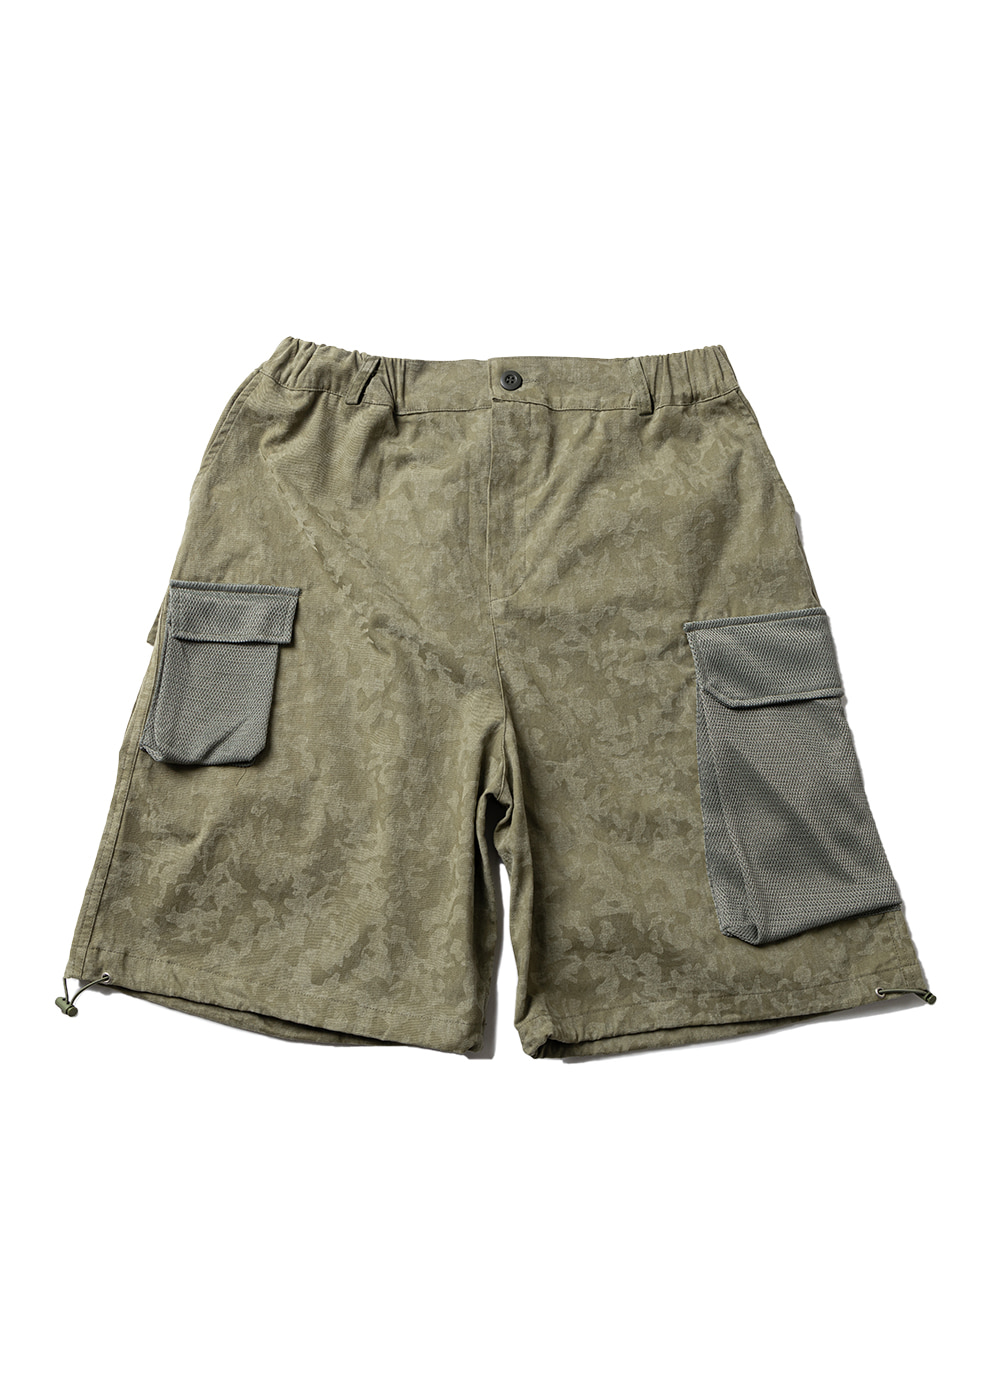 MESH CARGO POCKET SHORT PANTS MUZSP003-CM